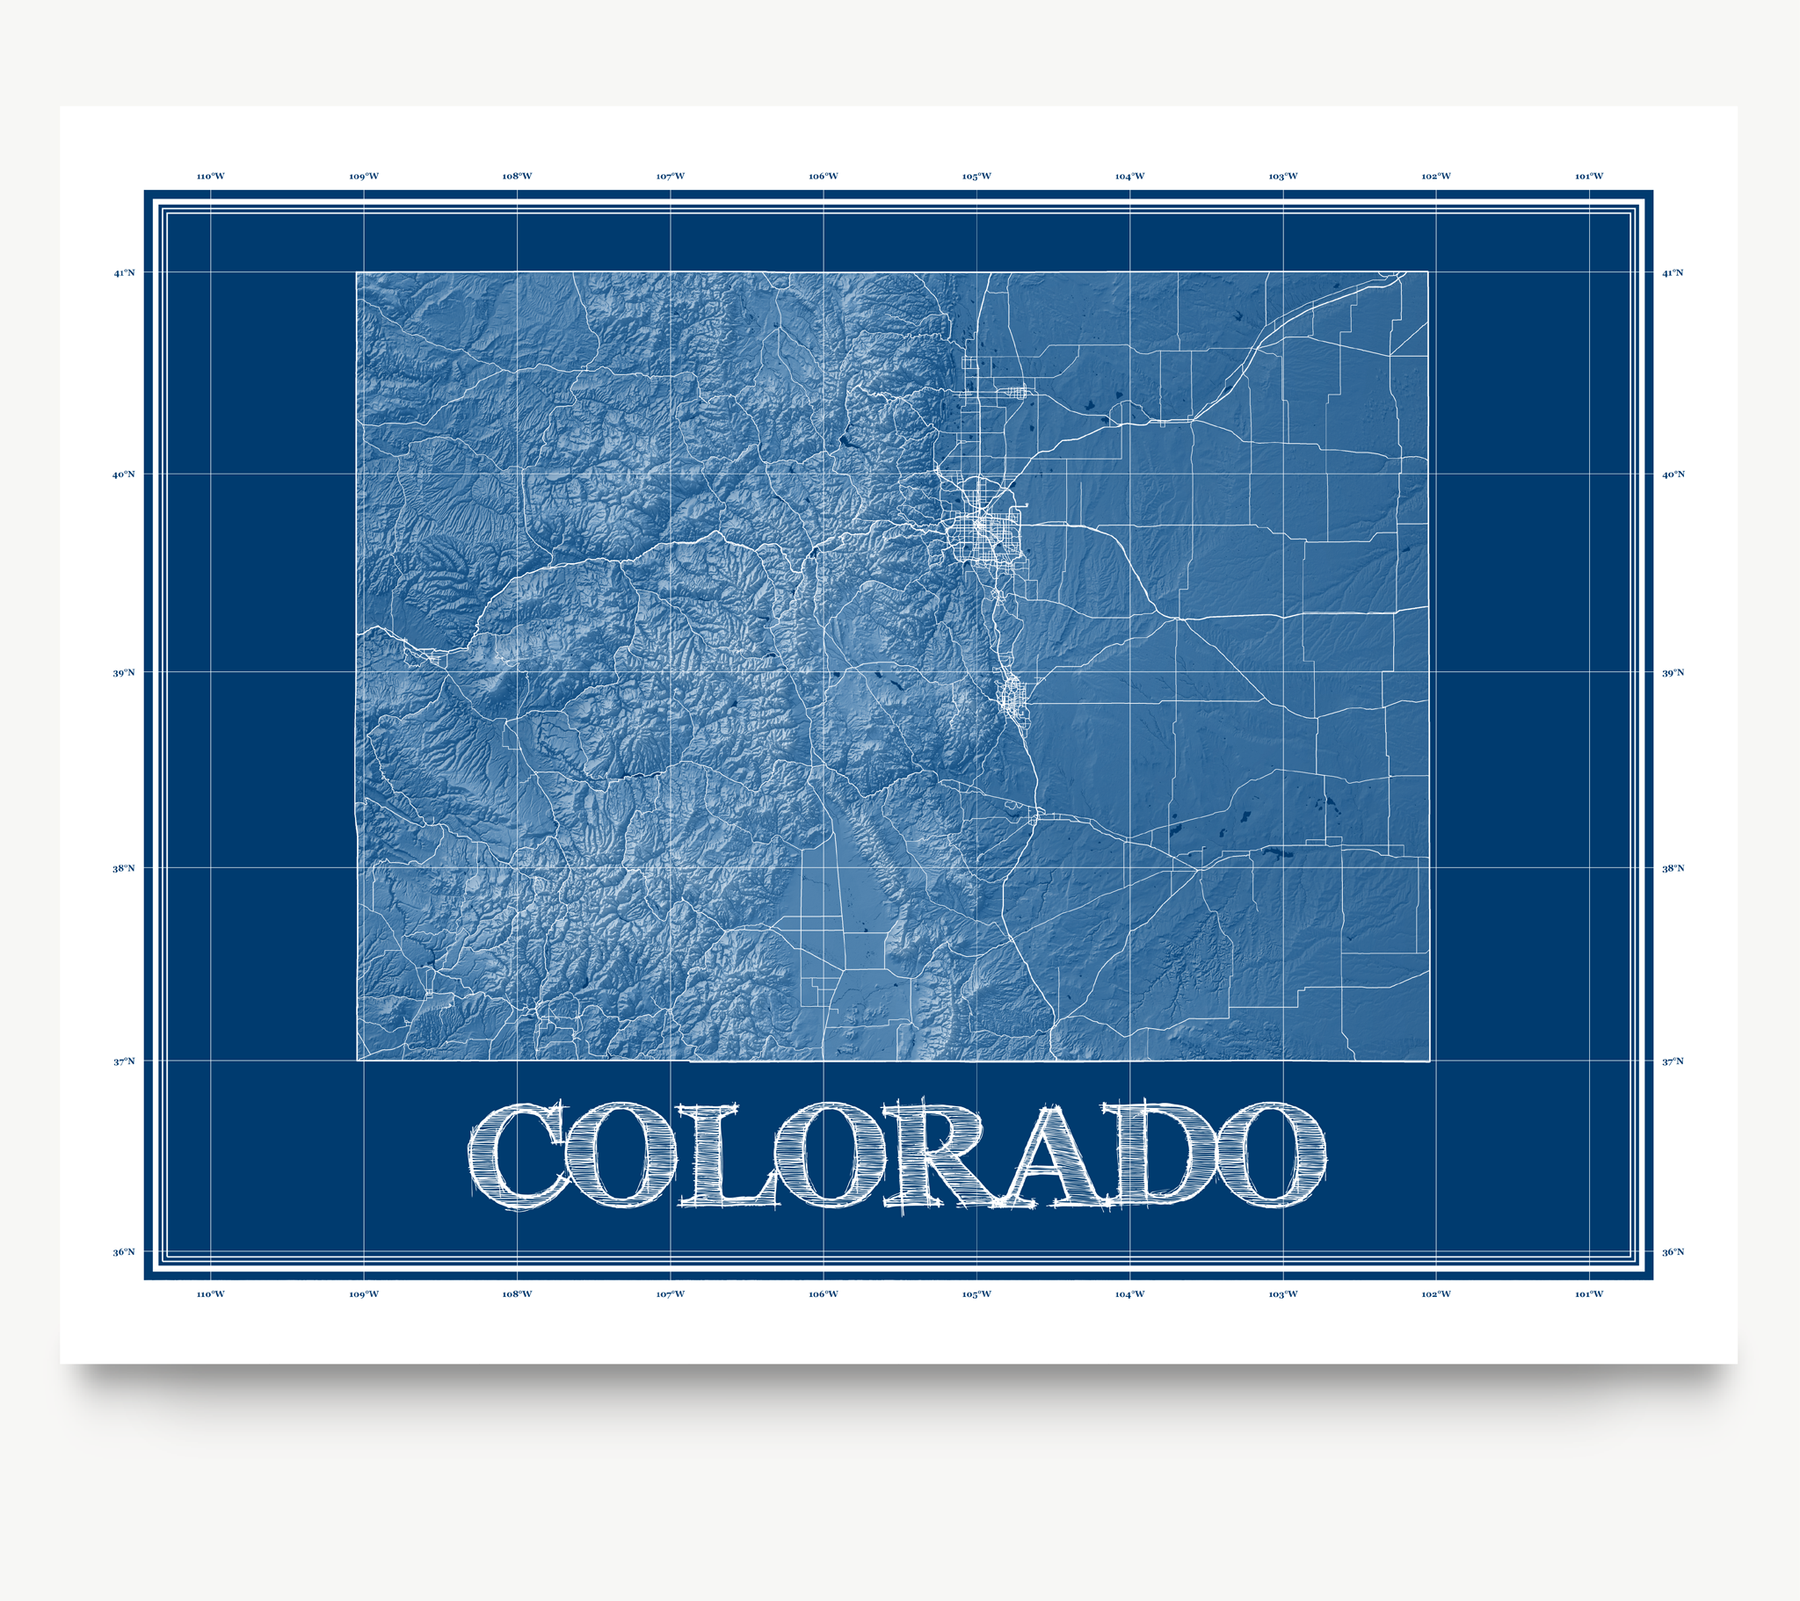 Colorado state blueprint map art print designed by Maps As Art.